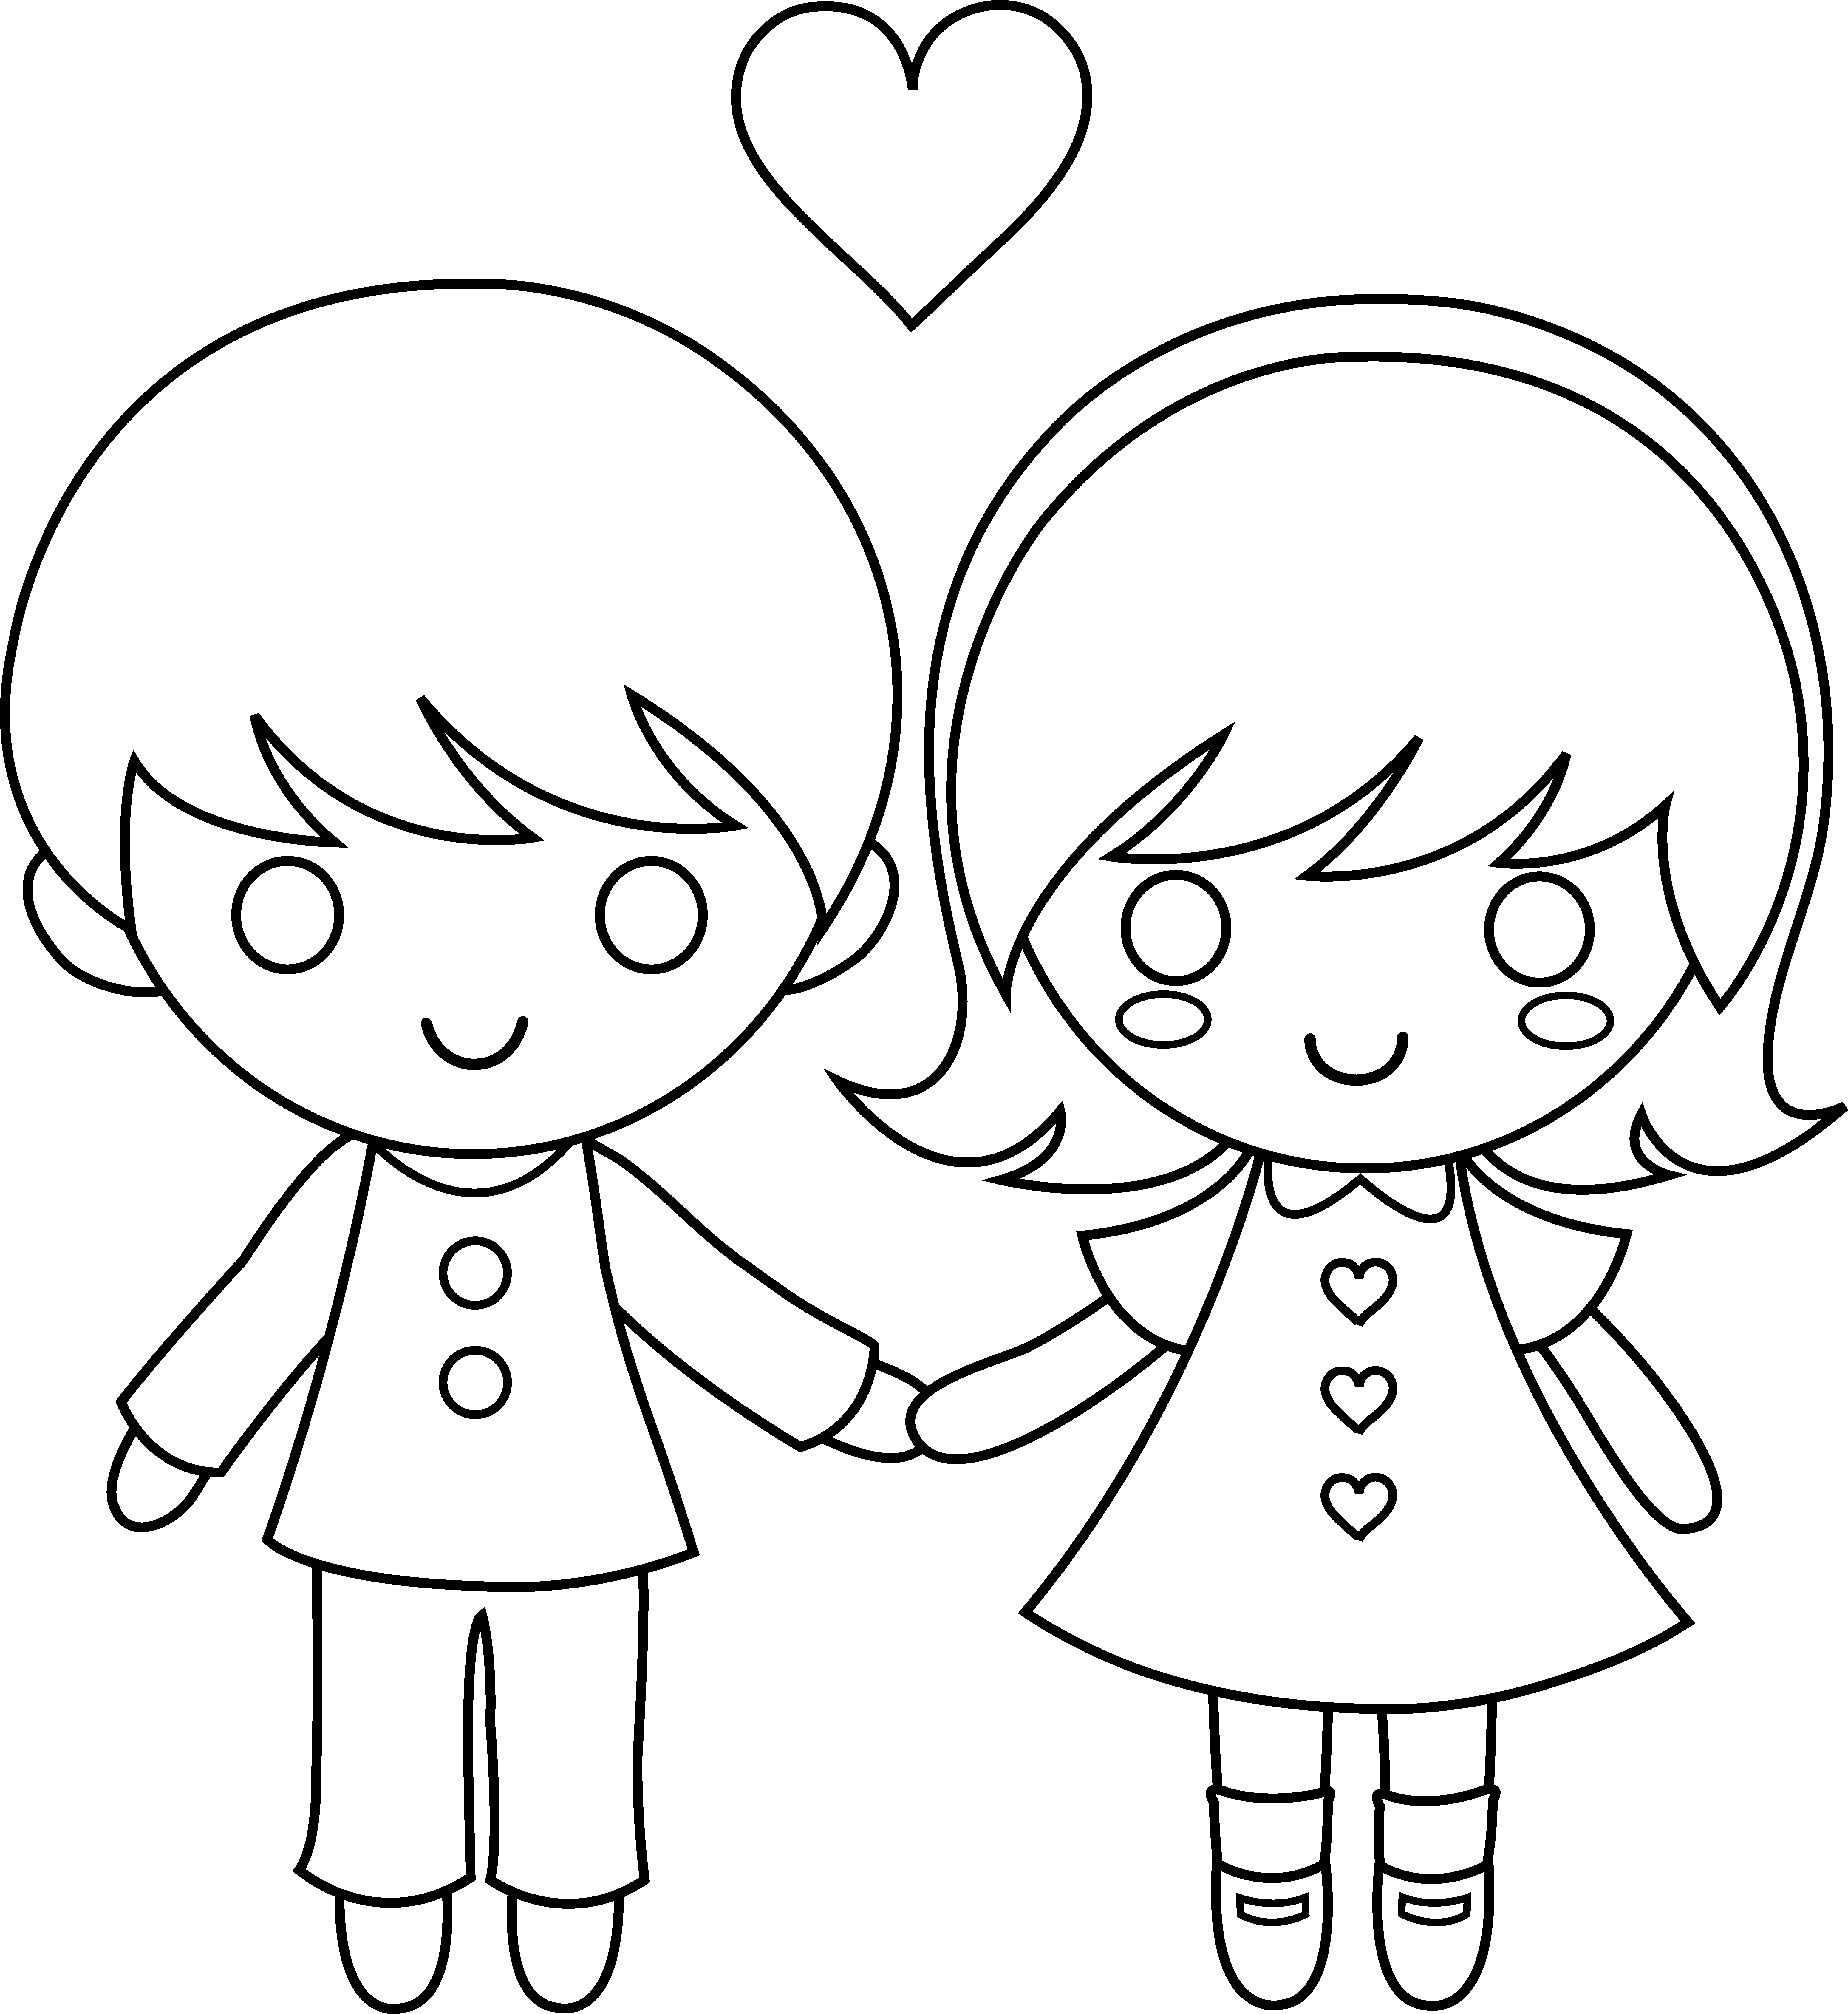 colouring picture of girl best free printable coloring pages for kids and teens girl colouring of picture